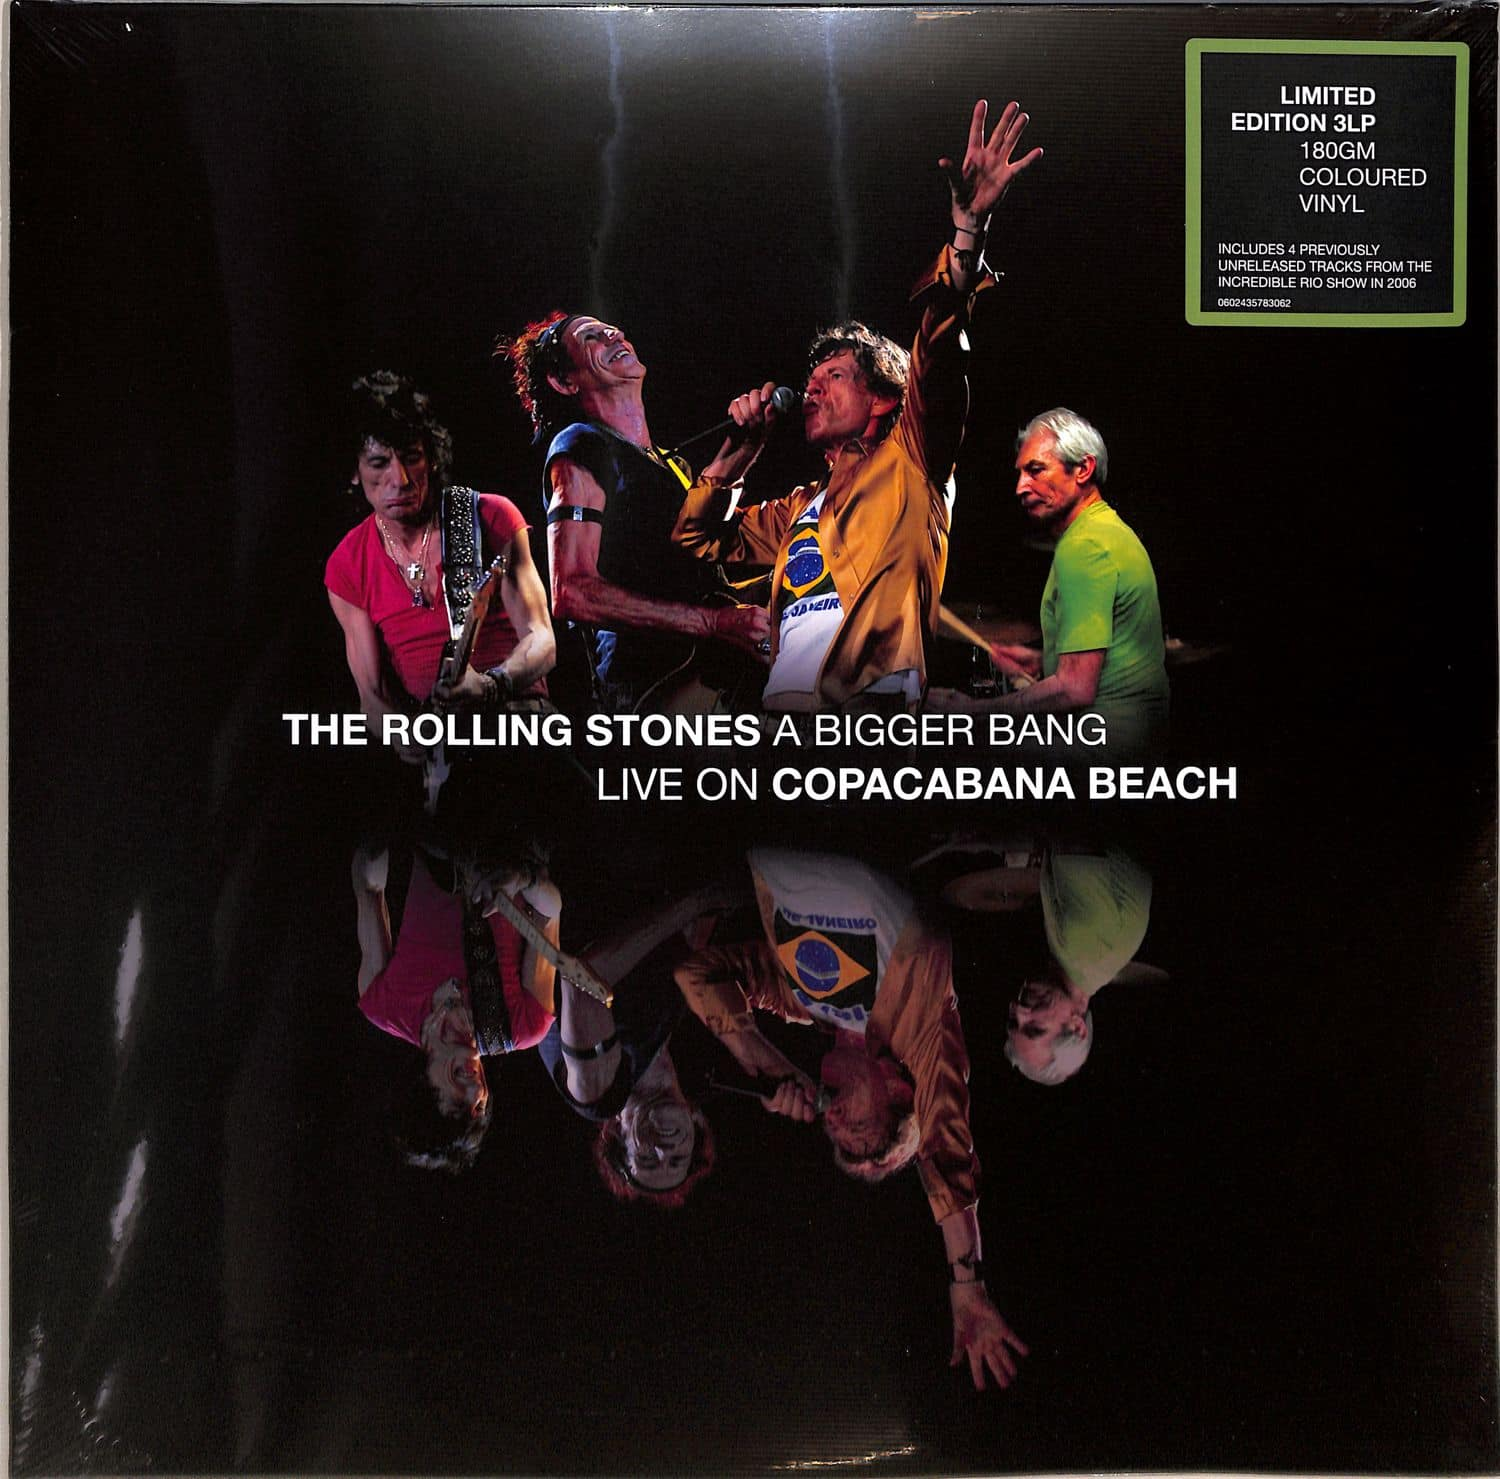 The Rolling Stones - A BIGGER BANG,LIVE IN RIO 2006